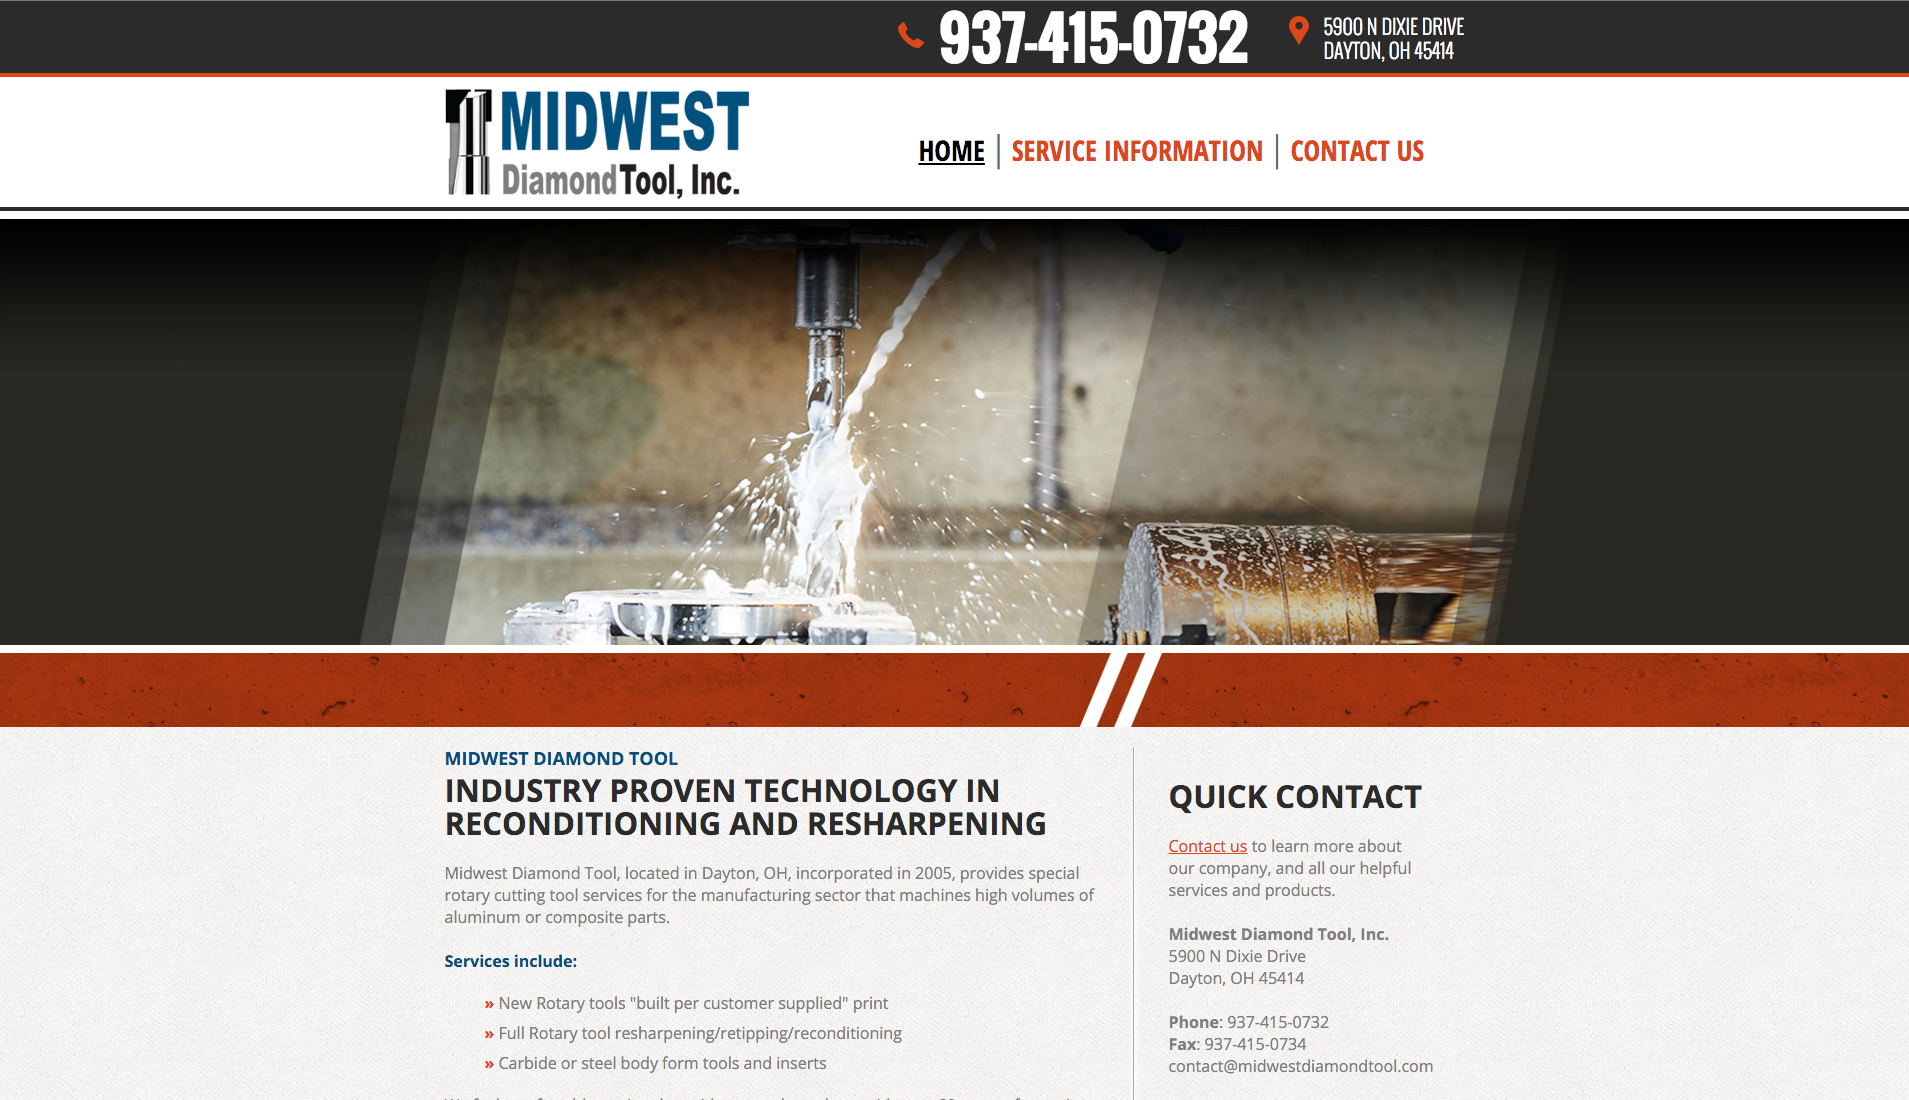 Website for Midwest Diamond Tool